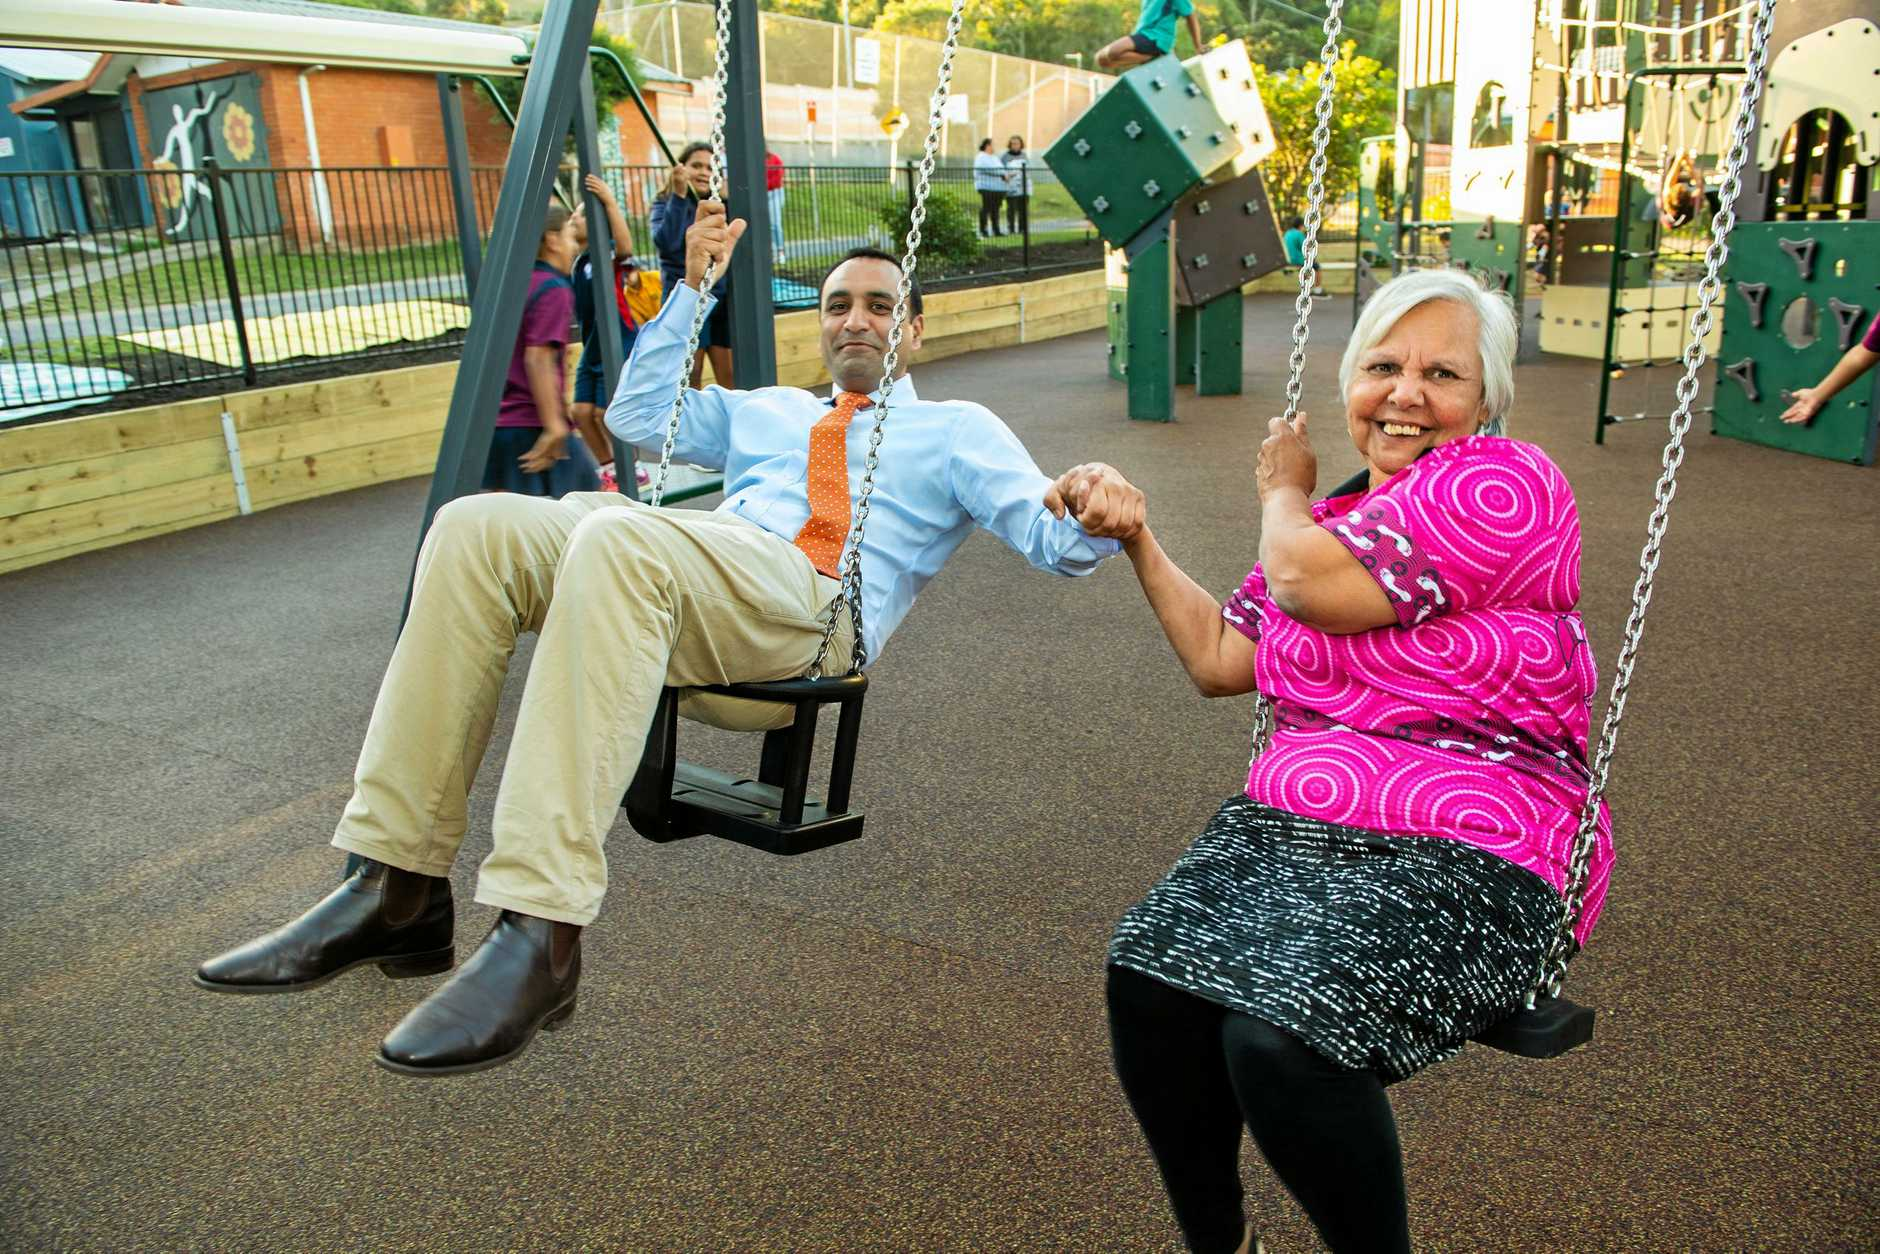 New playground opened at Wongala community village, Pic Elder Aunty Jenny and Gurmesh Singh member for Coffs Harbour. 12 JUNE 2019